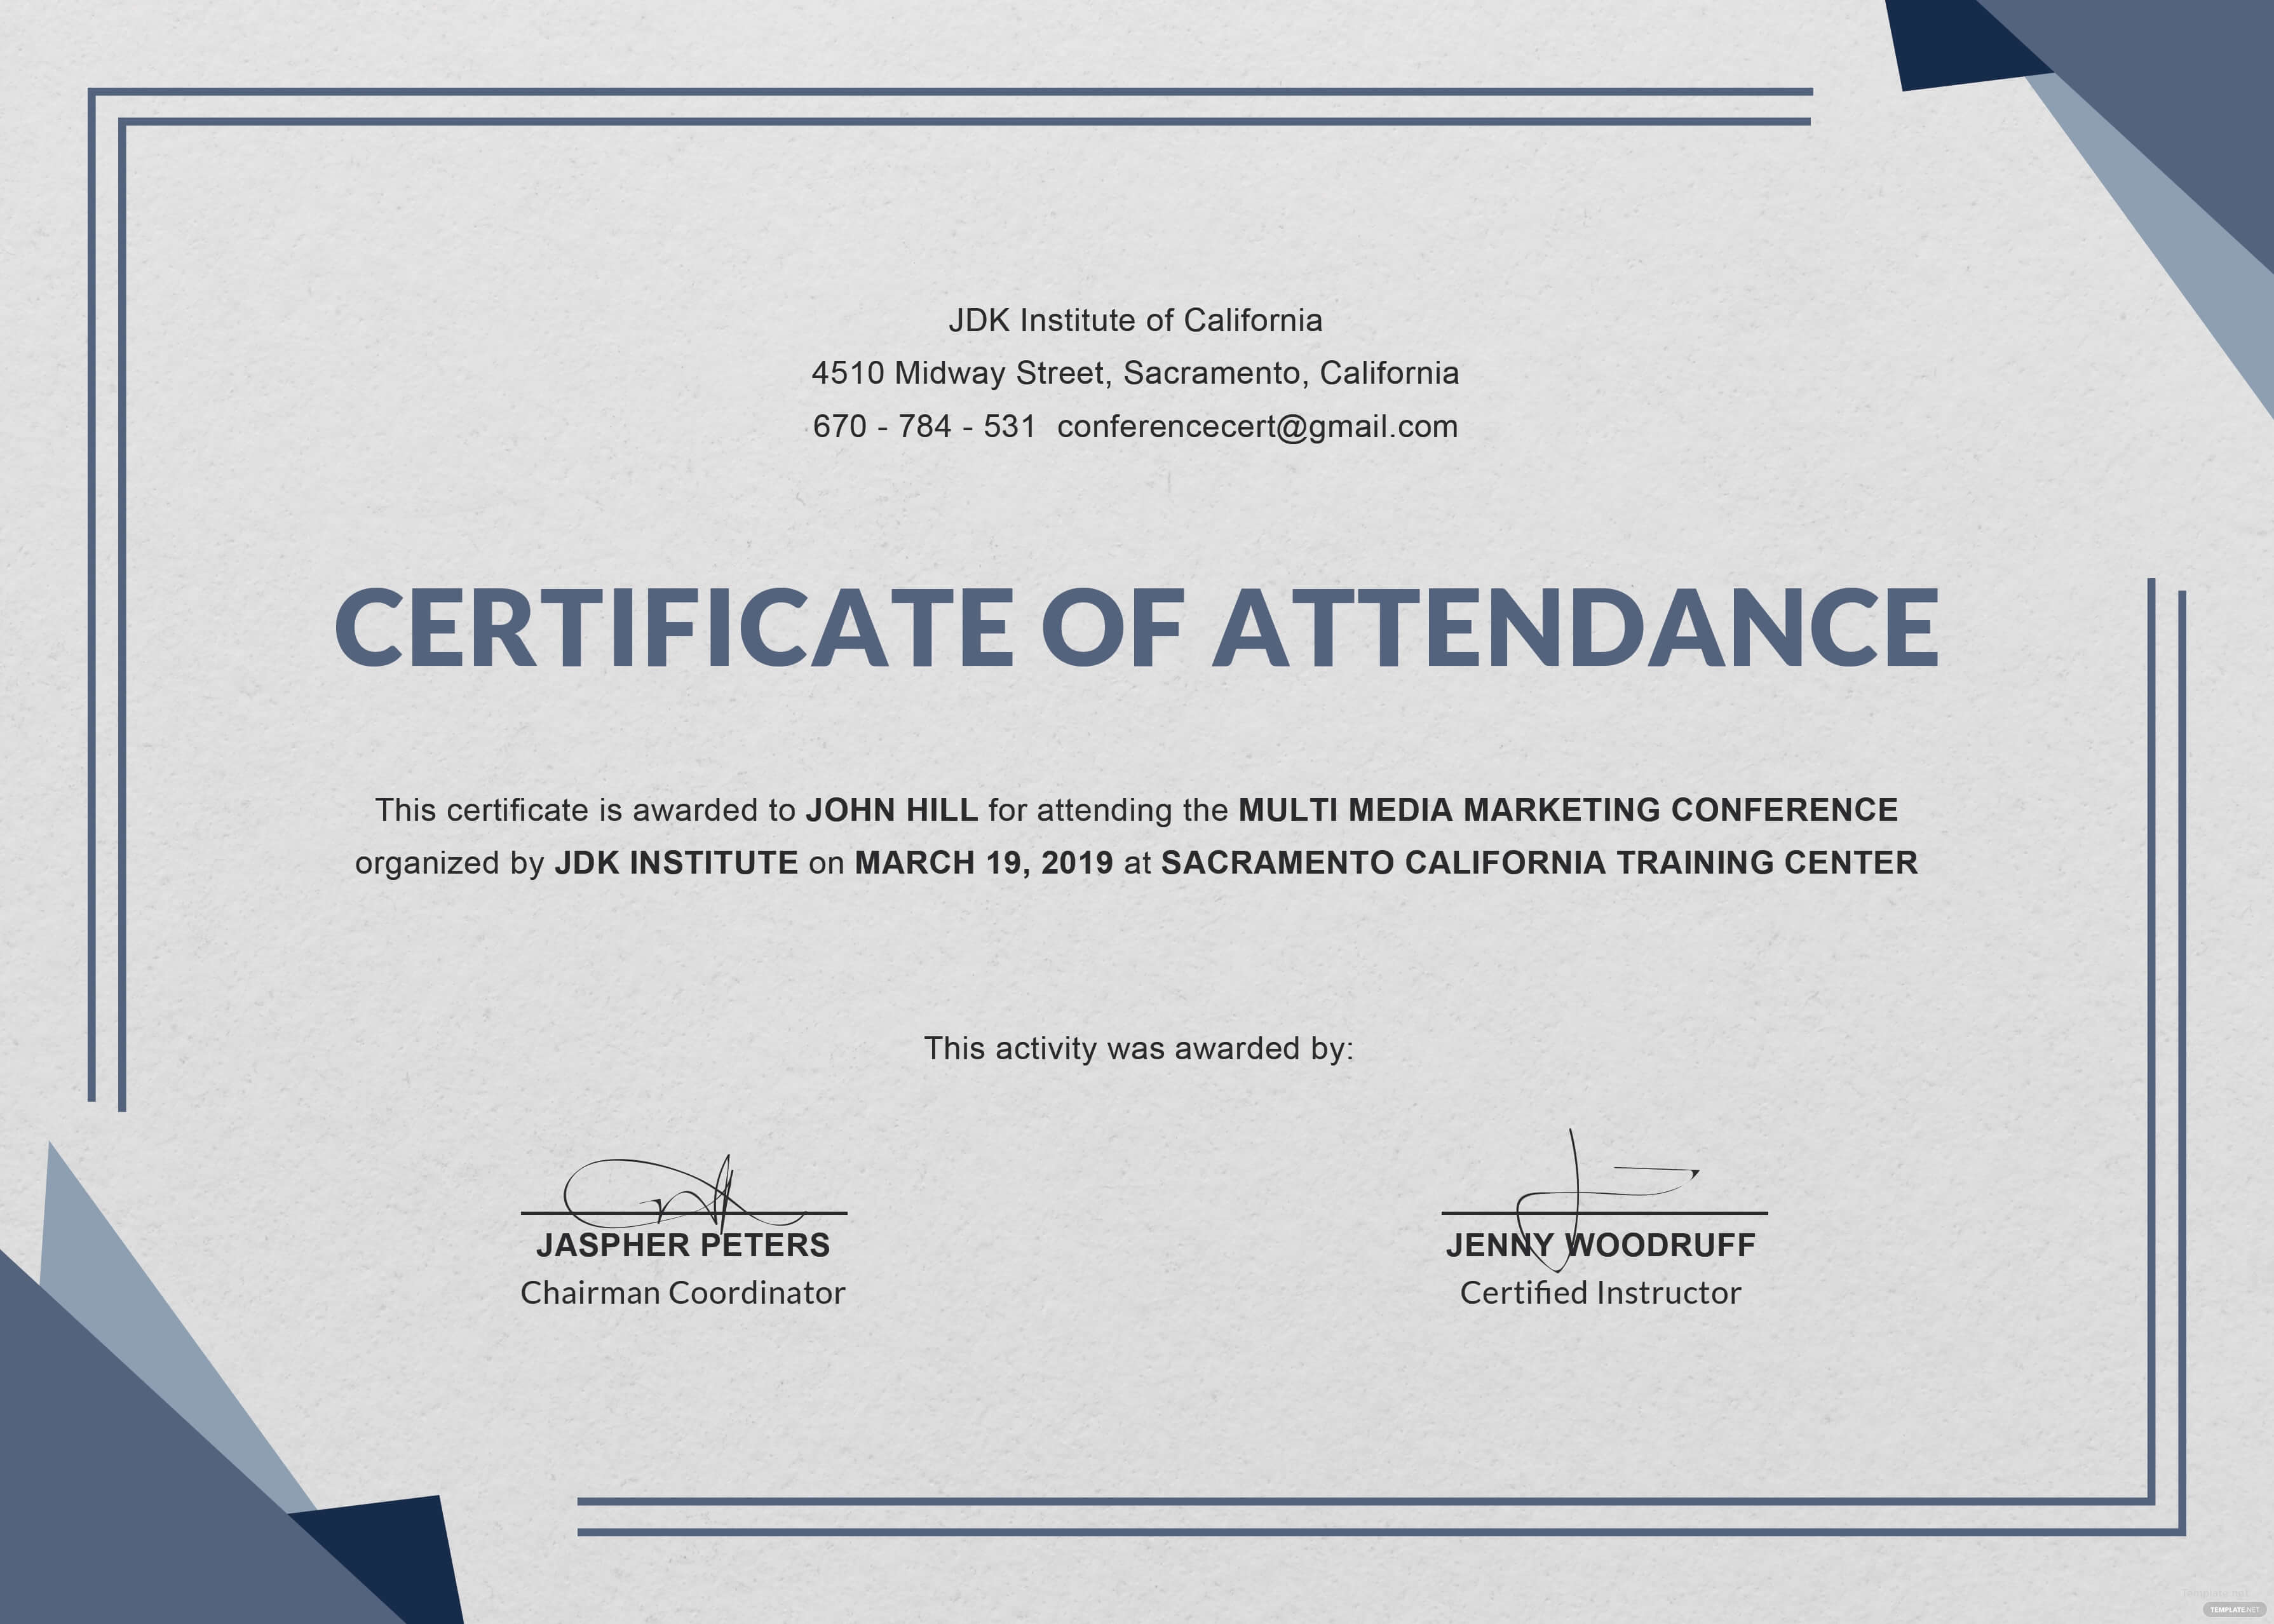 Free Training Attendance Certificate Template Word Printable Regarding Certificate Of Attendance Conference Template